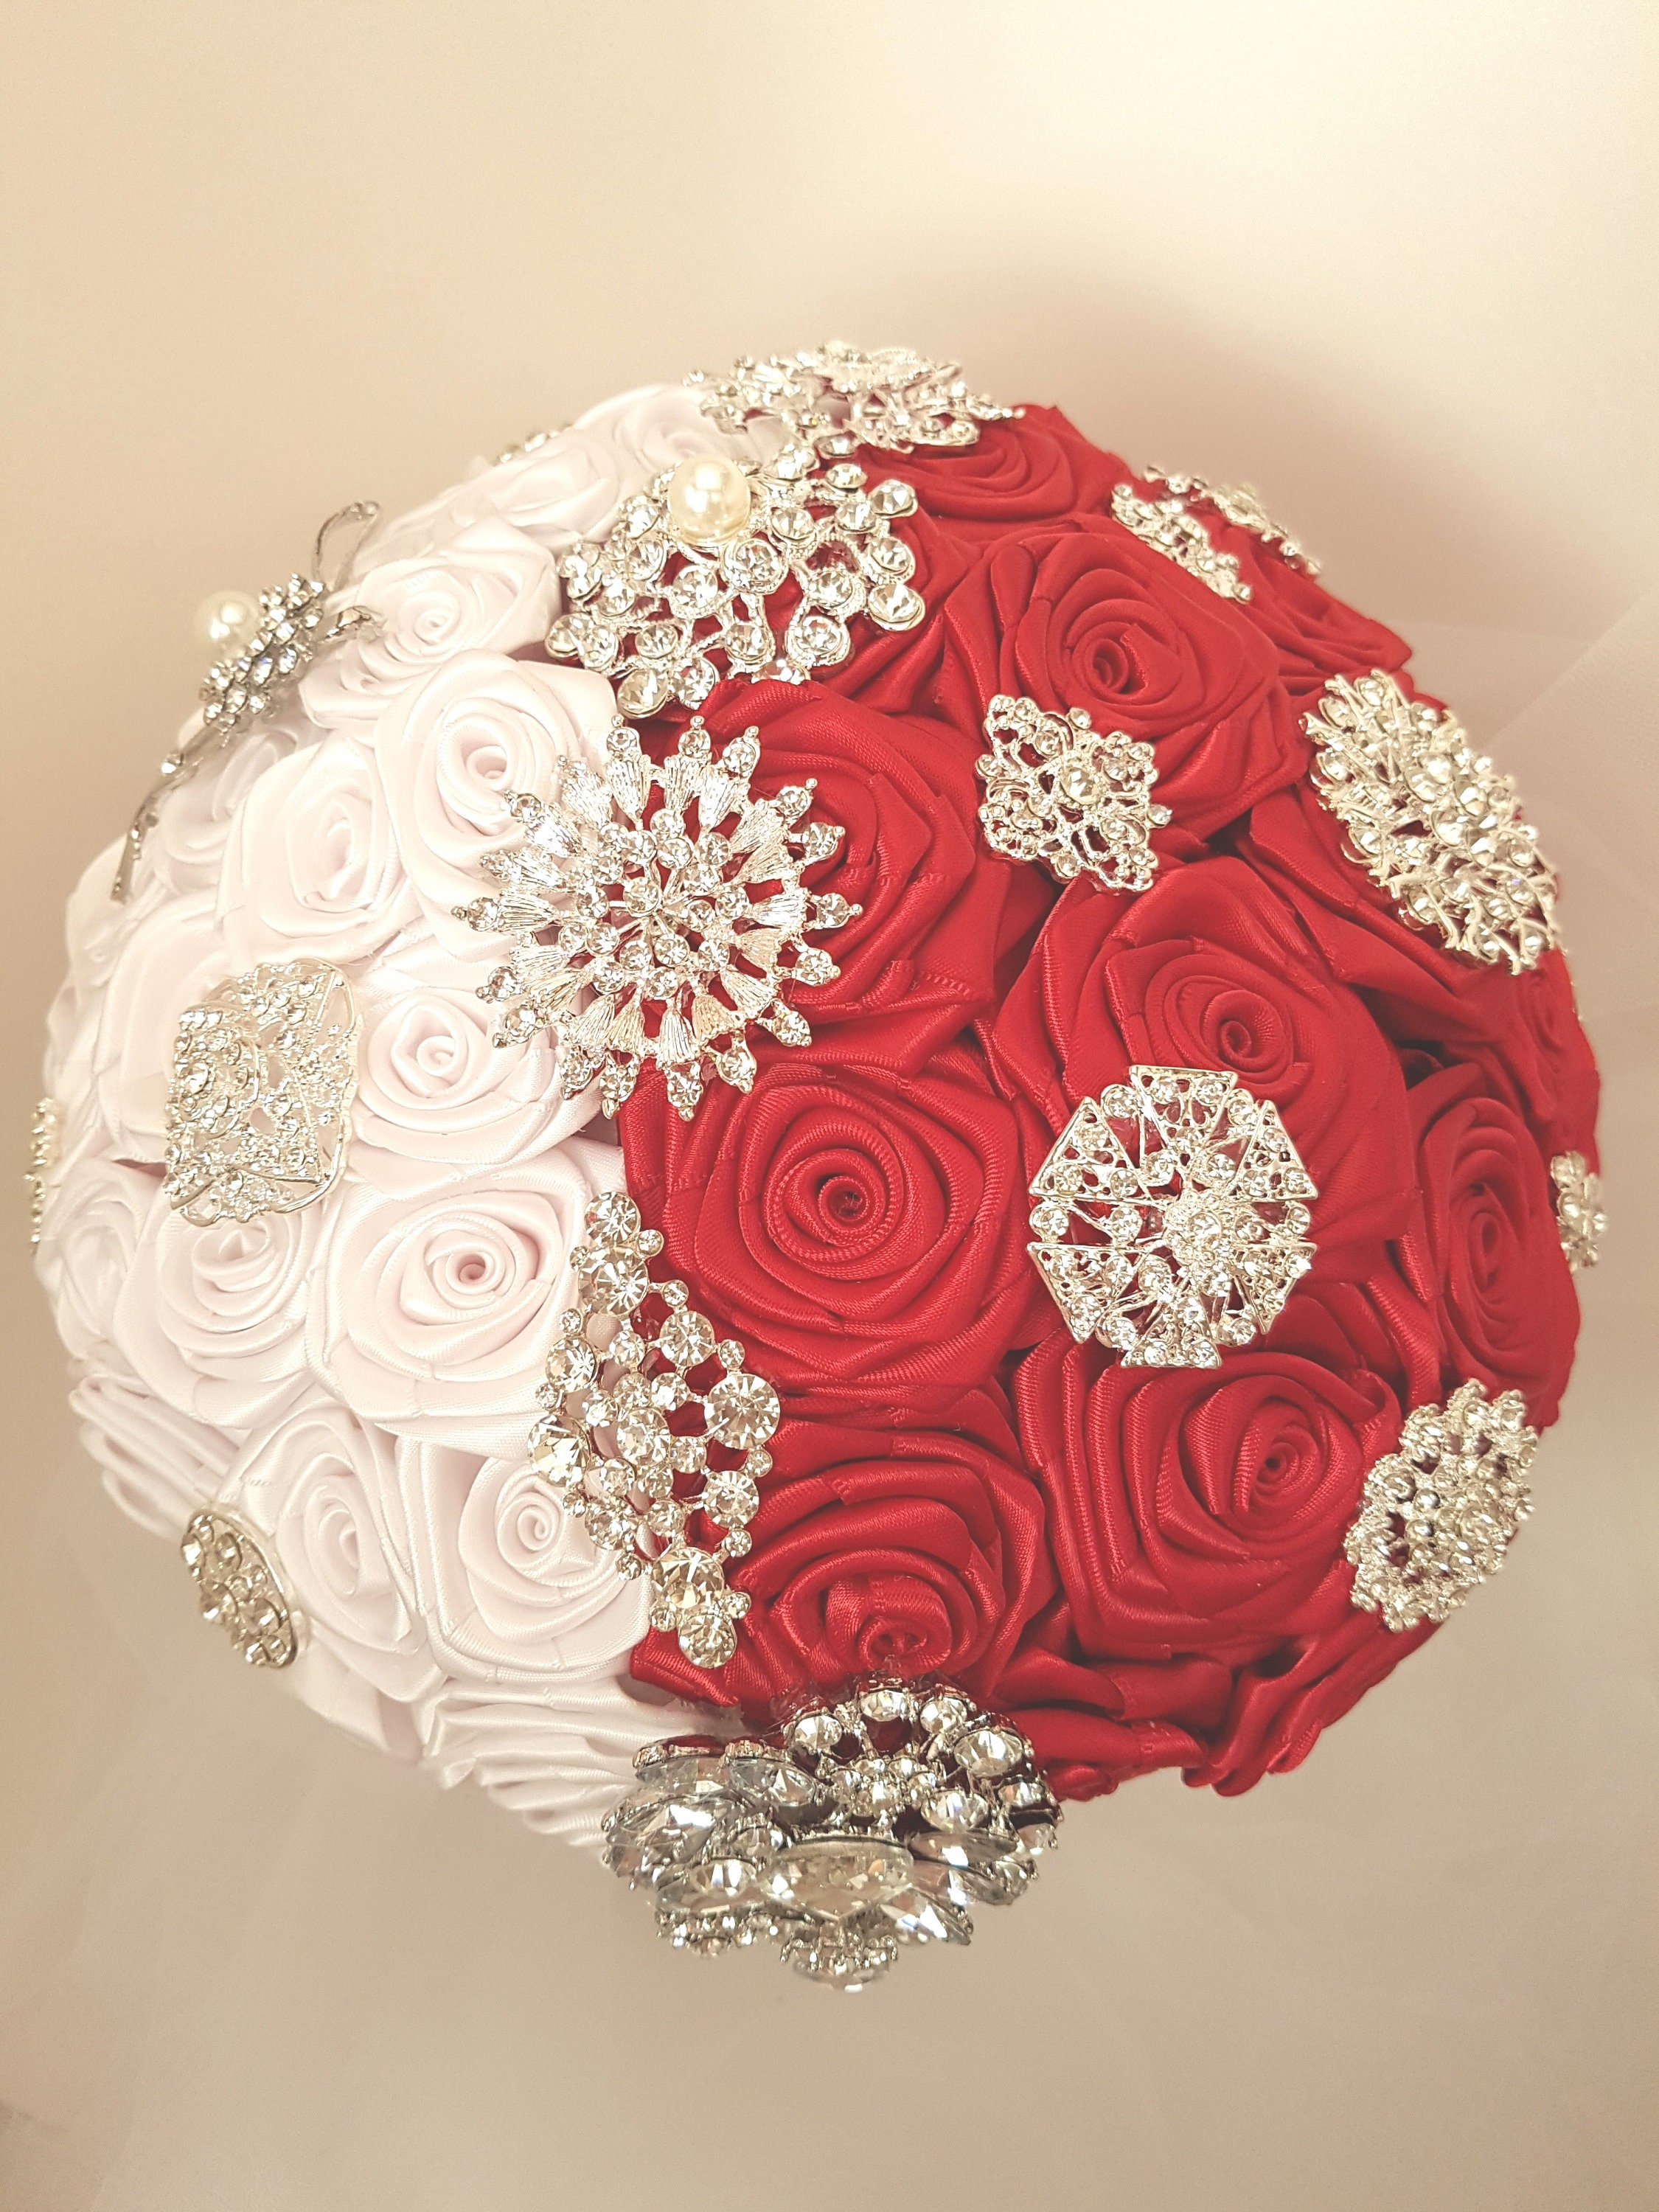 Bridal brooch bouquet satin ribbon flowers fabric flowers etsy zoom izmirmasajfo